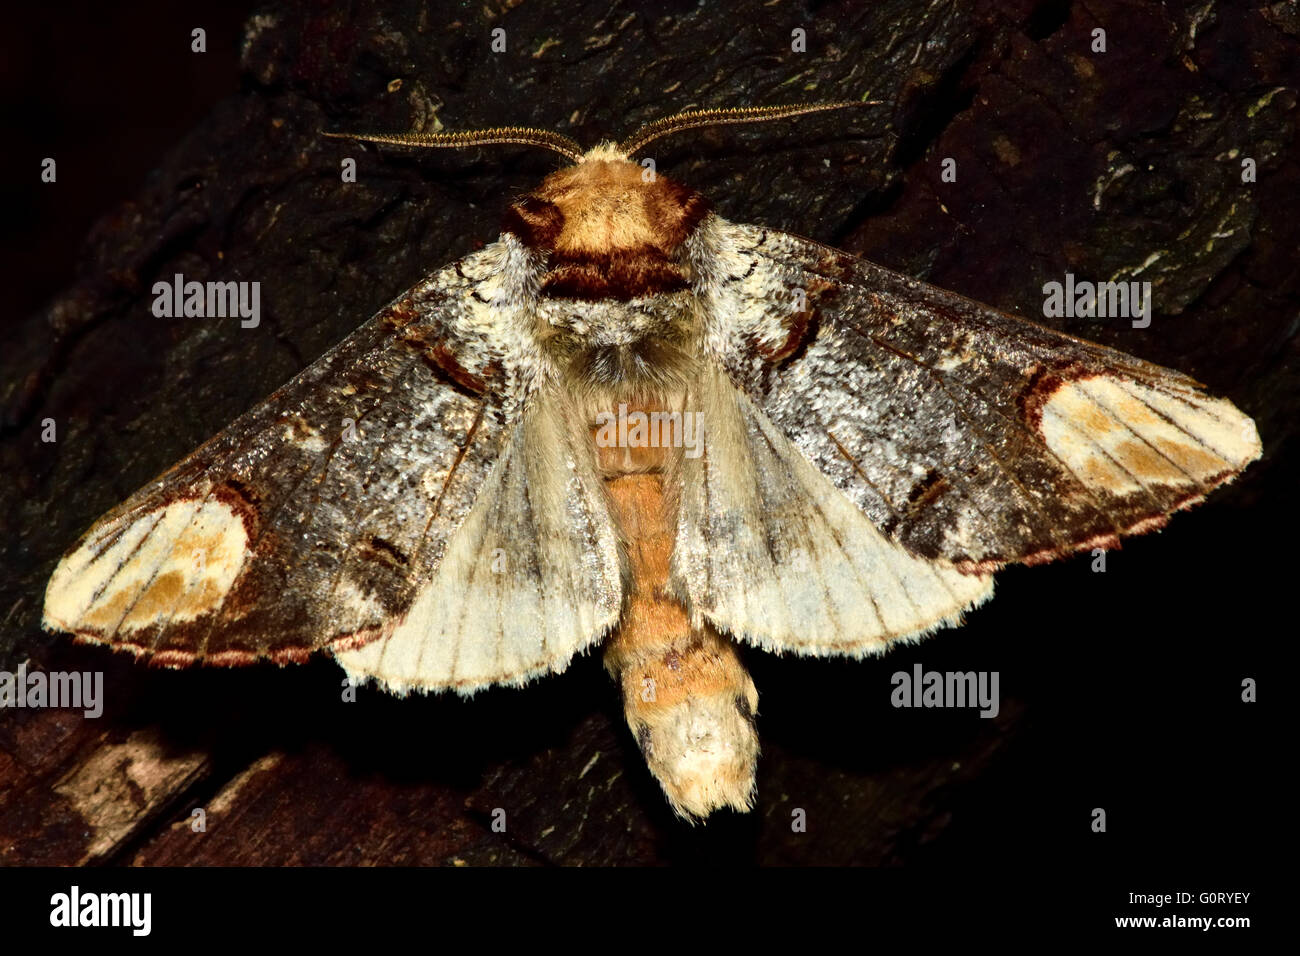 Buff-tip moth (Phalera bucephala) with wings open. British nocturnal insect in the family Notodontidae, with hind - Stock Image